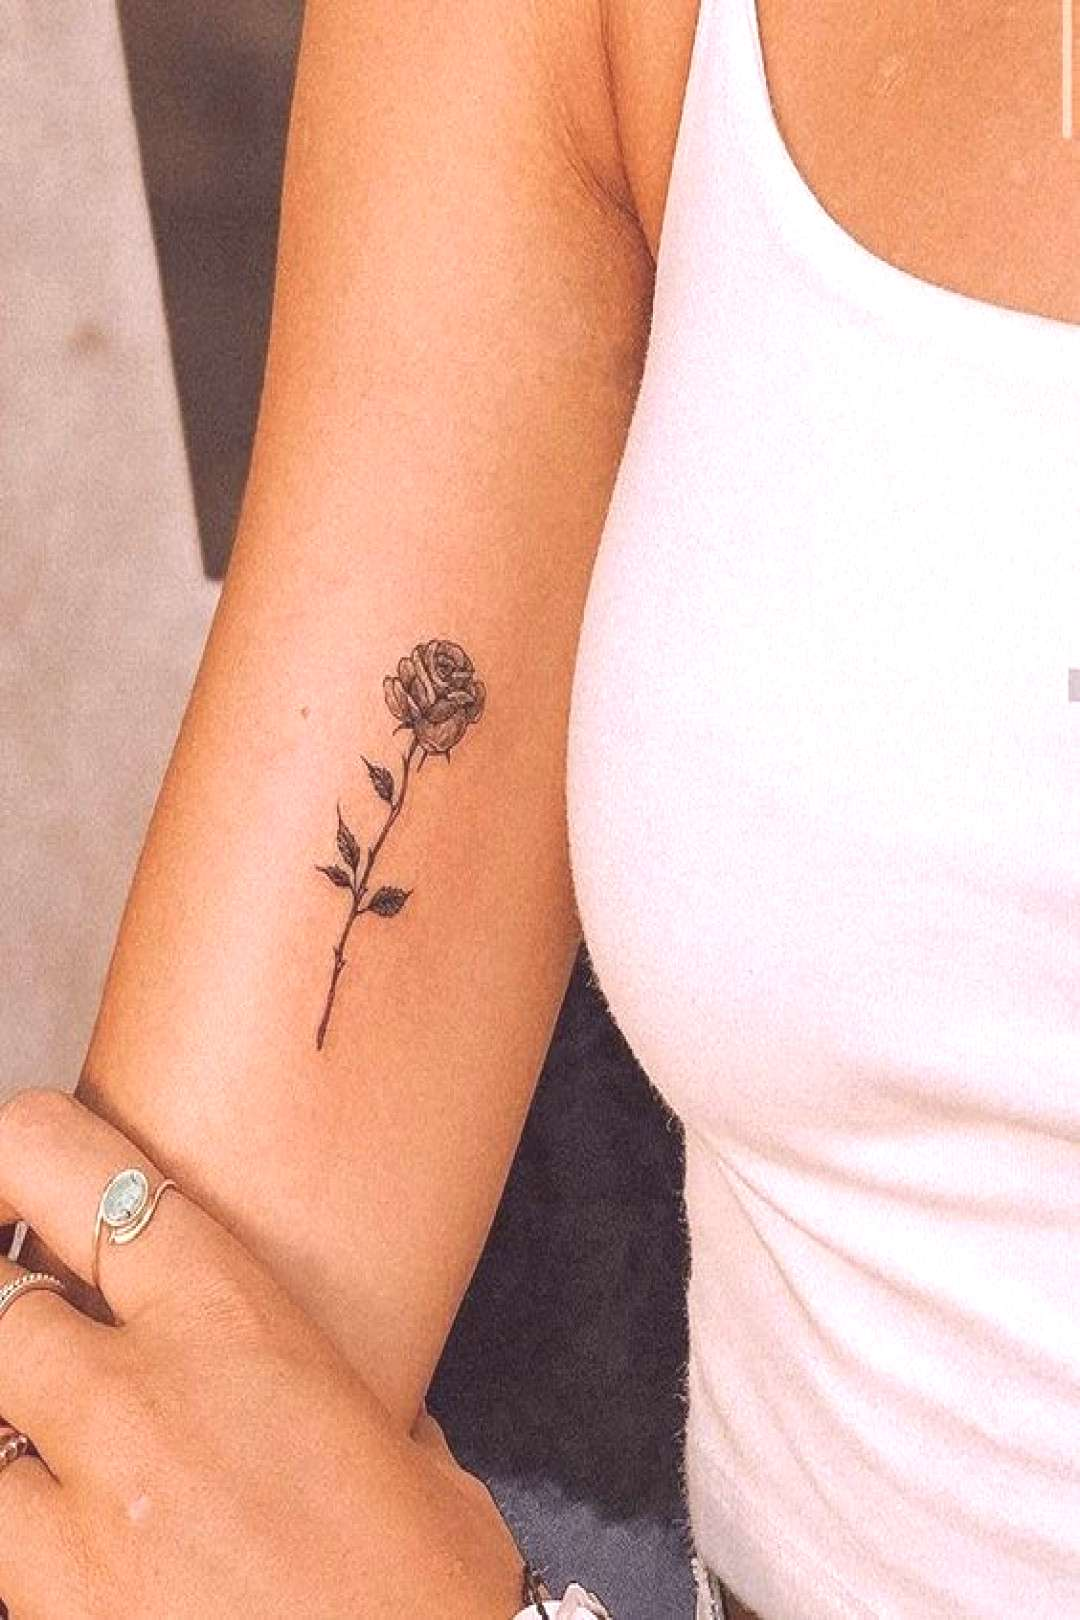 Tattoo flowers tattoo The most popular sayings - flower tattoos -  Tattoo flowers tattoo   The most